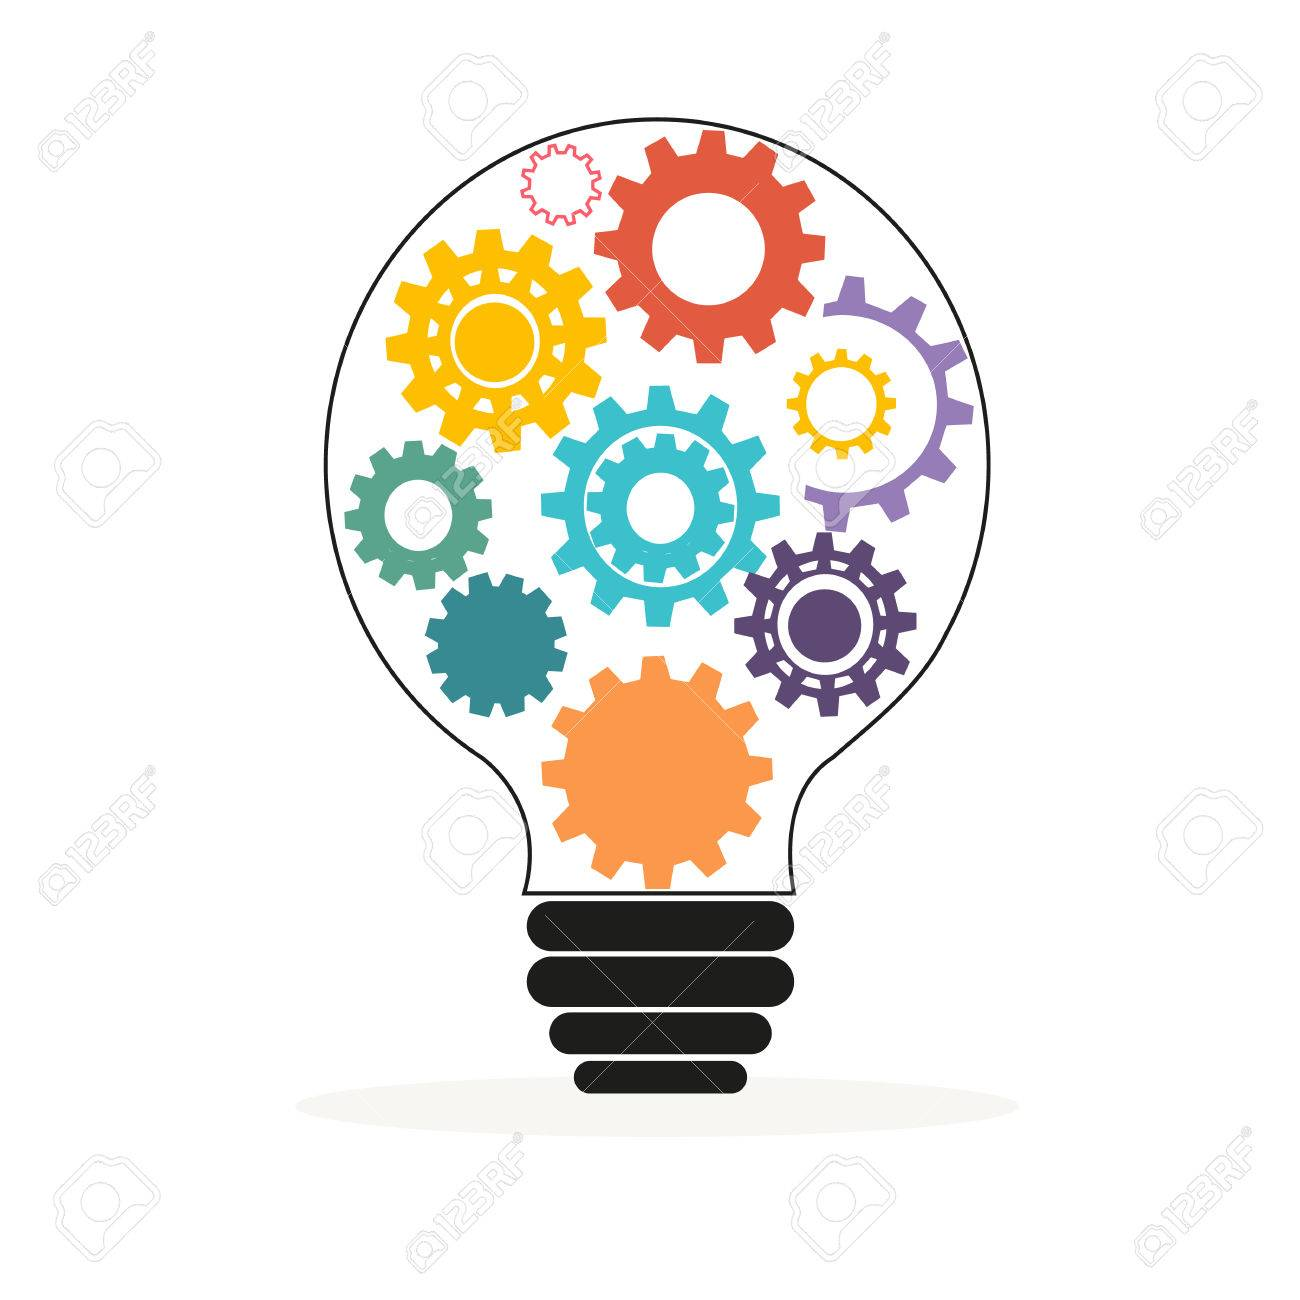 Light bulb with colorful gears and cogs vector - 46579043